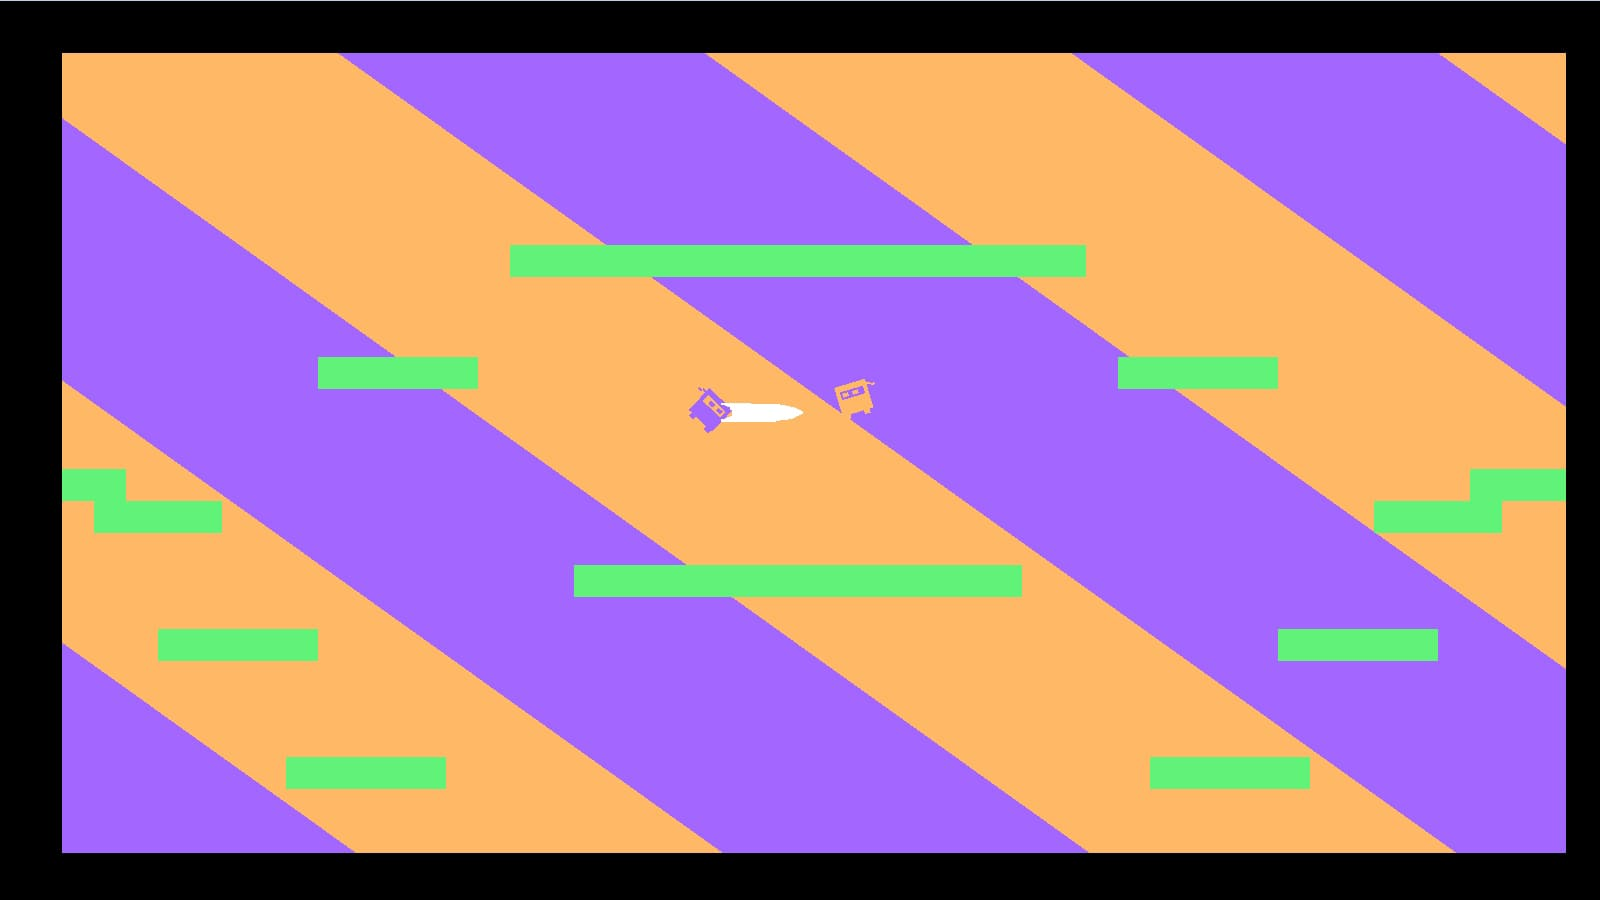 Two square purple and orange ninjas fight each other against a striped purple and orange background.